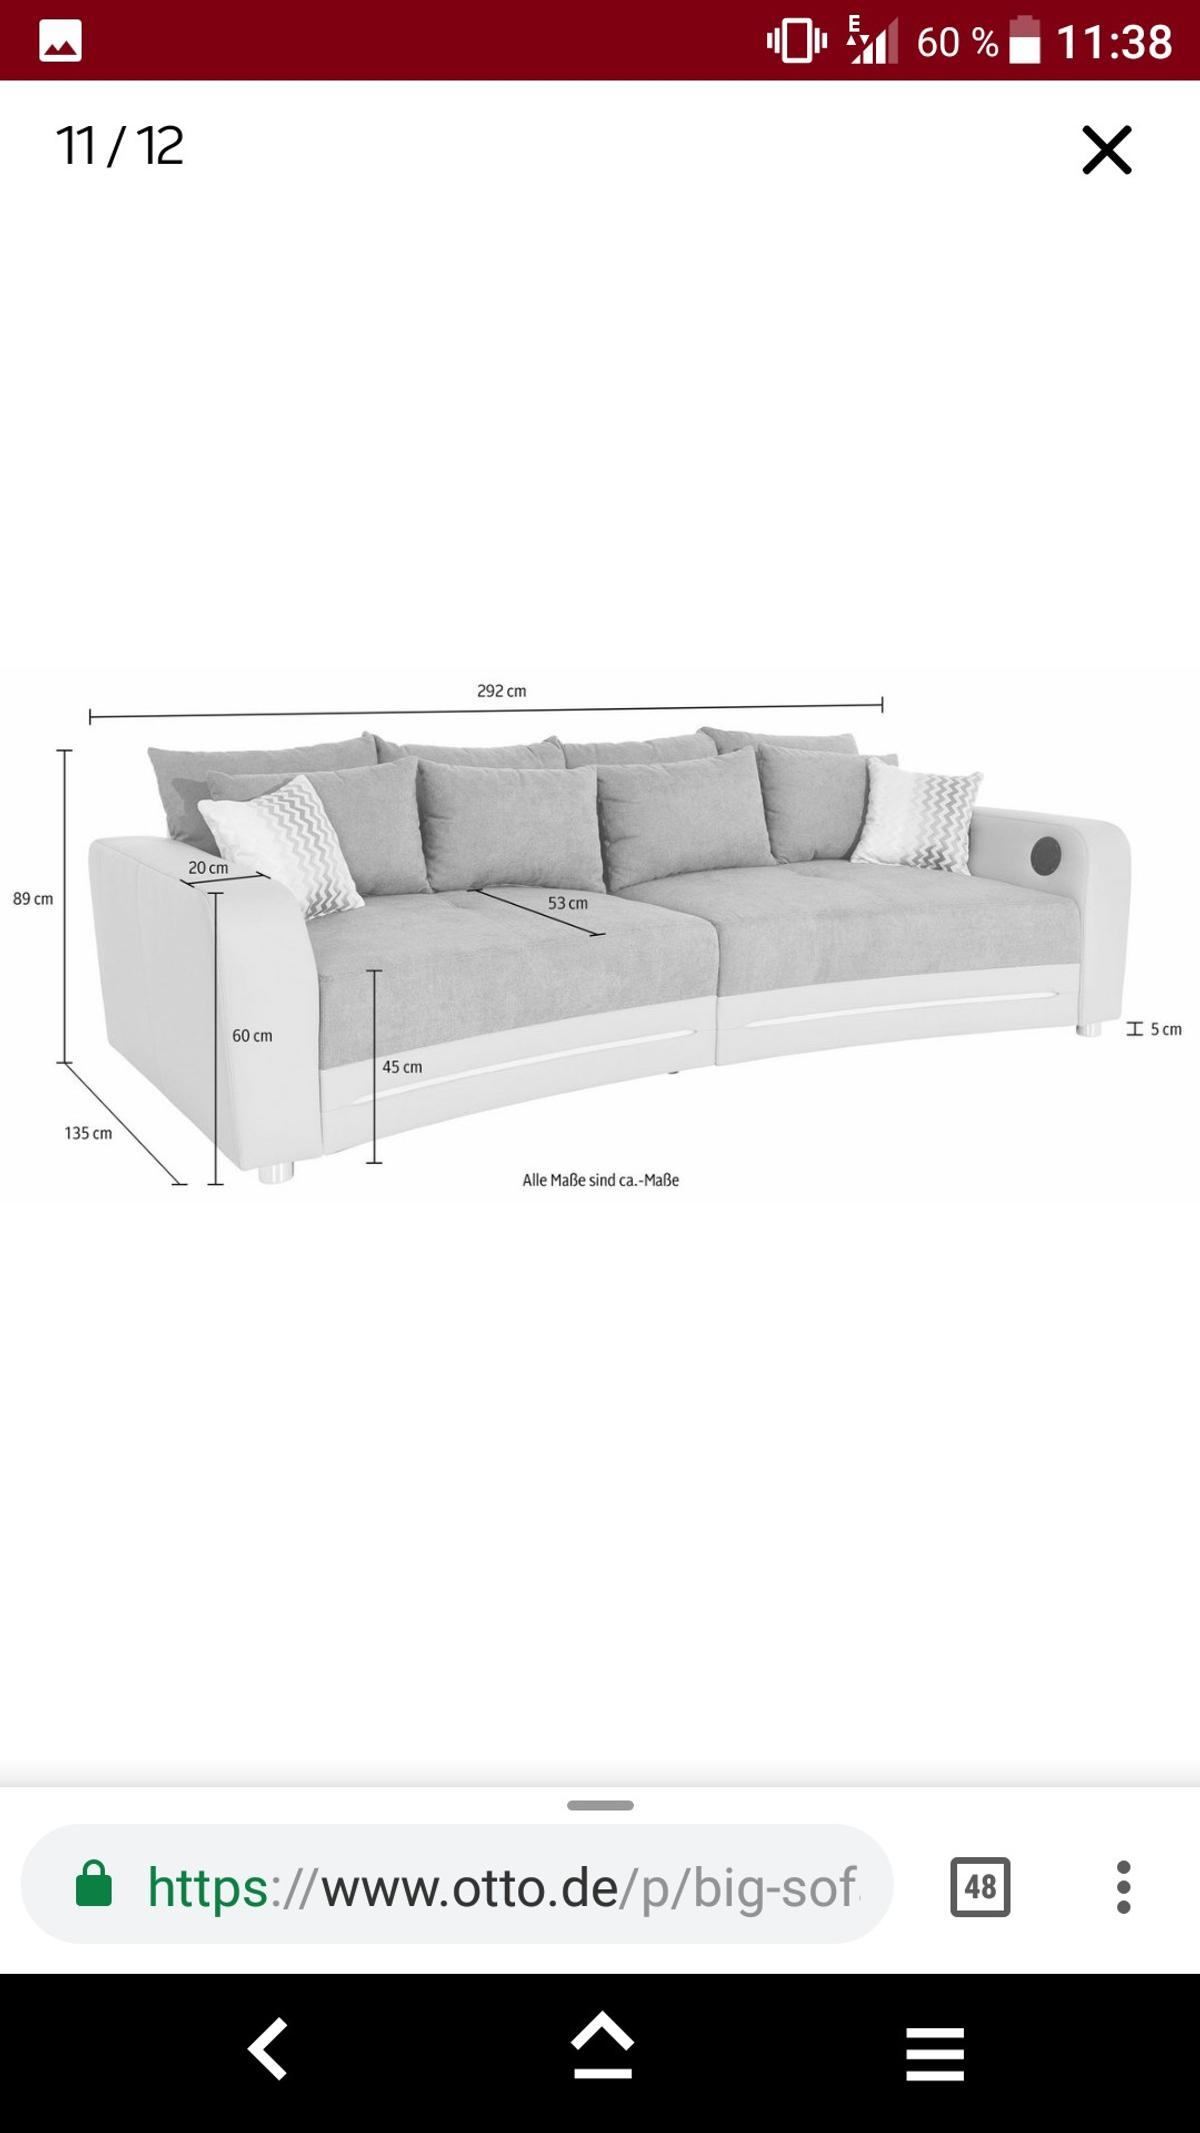 Ecksofa Mit Sound Couch Sofa Led Sound Bluetooth In 16816 Neuruppin For 450 00 For